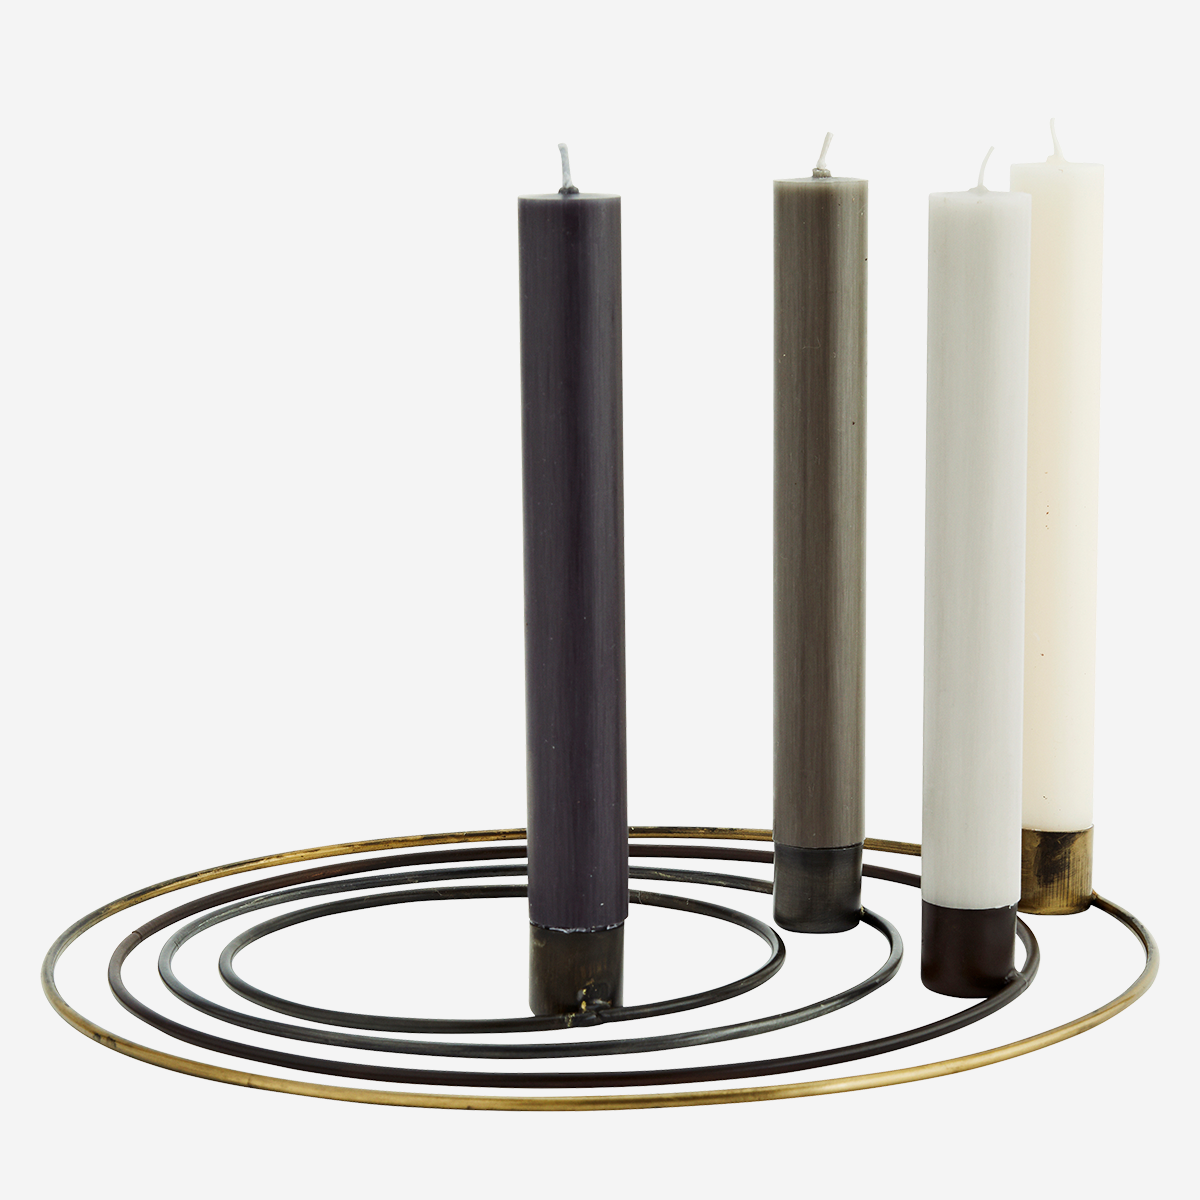 Round candle holders